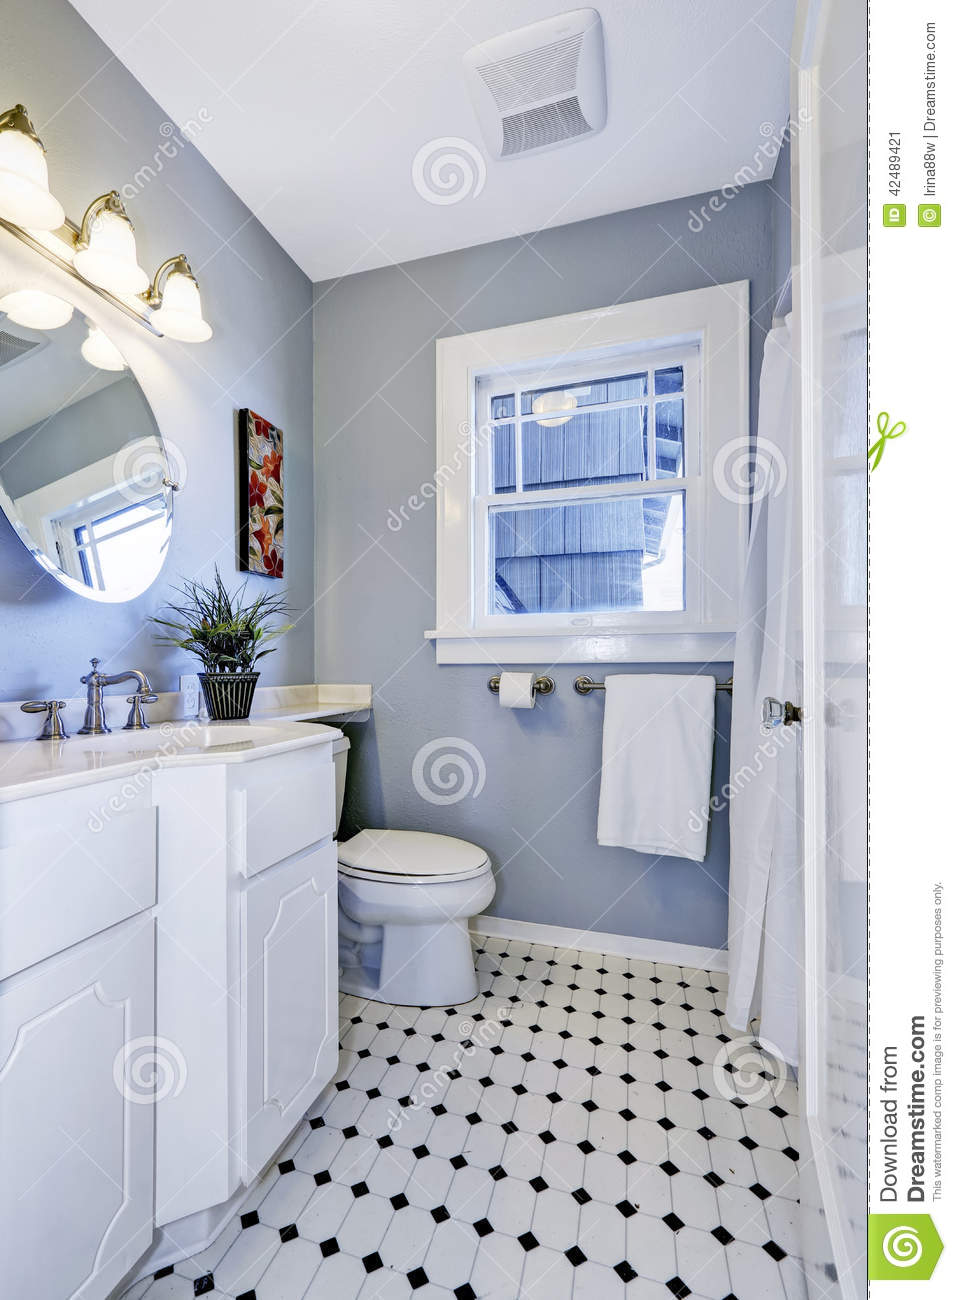 Download Bright Bathroom Interior In Light Blue Color Stock Image   Image  Of Bath, Mirror